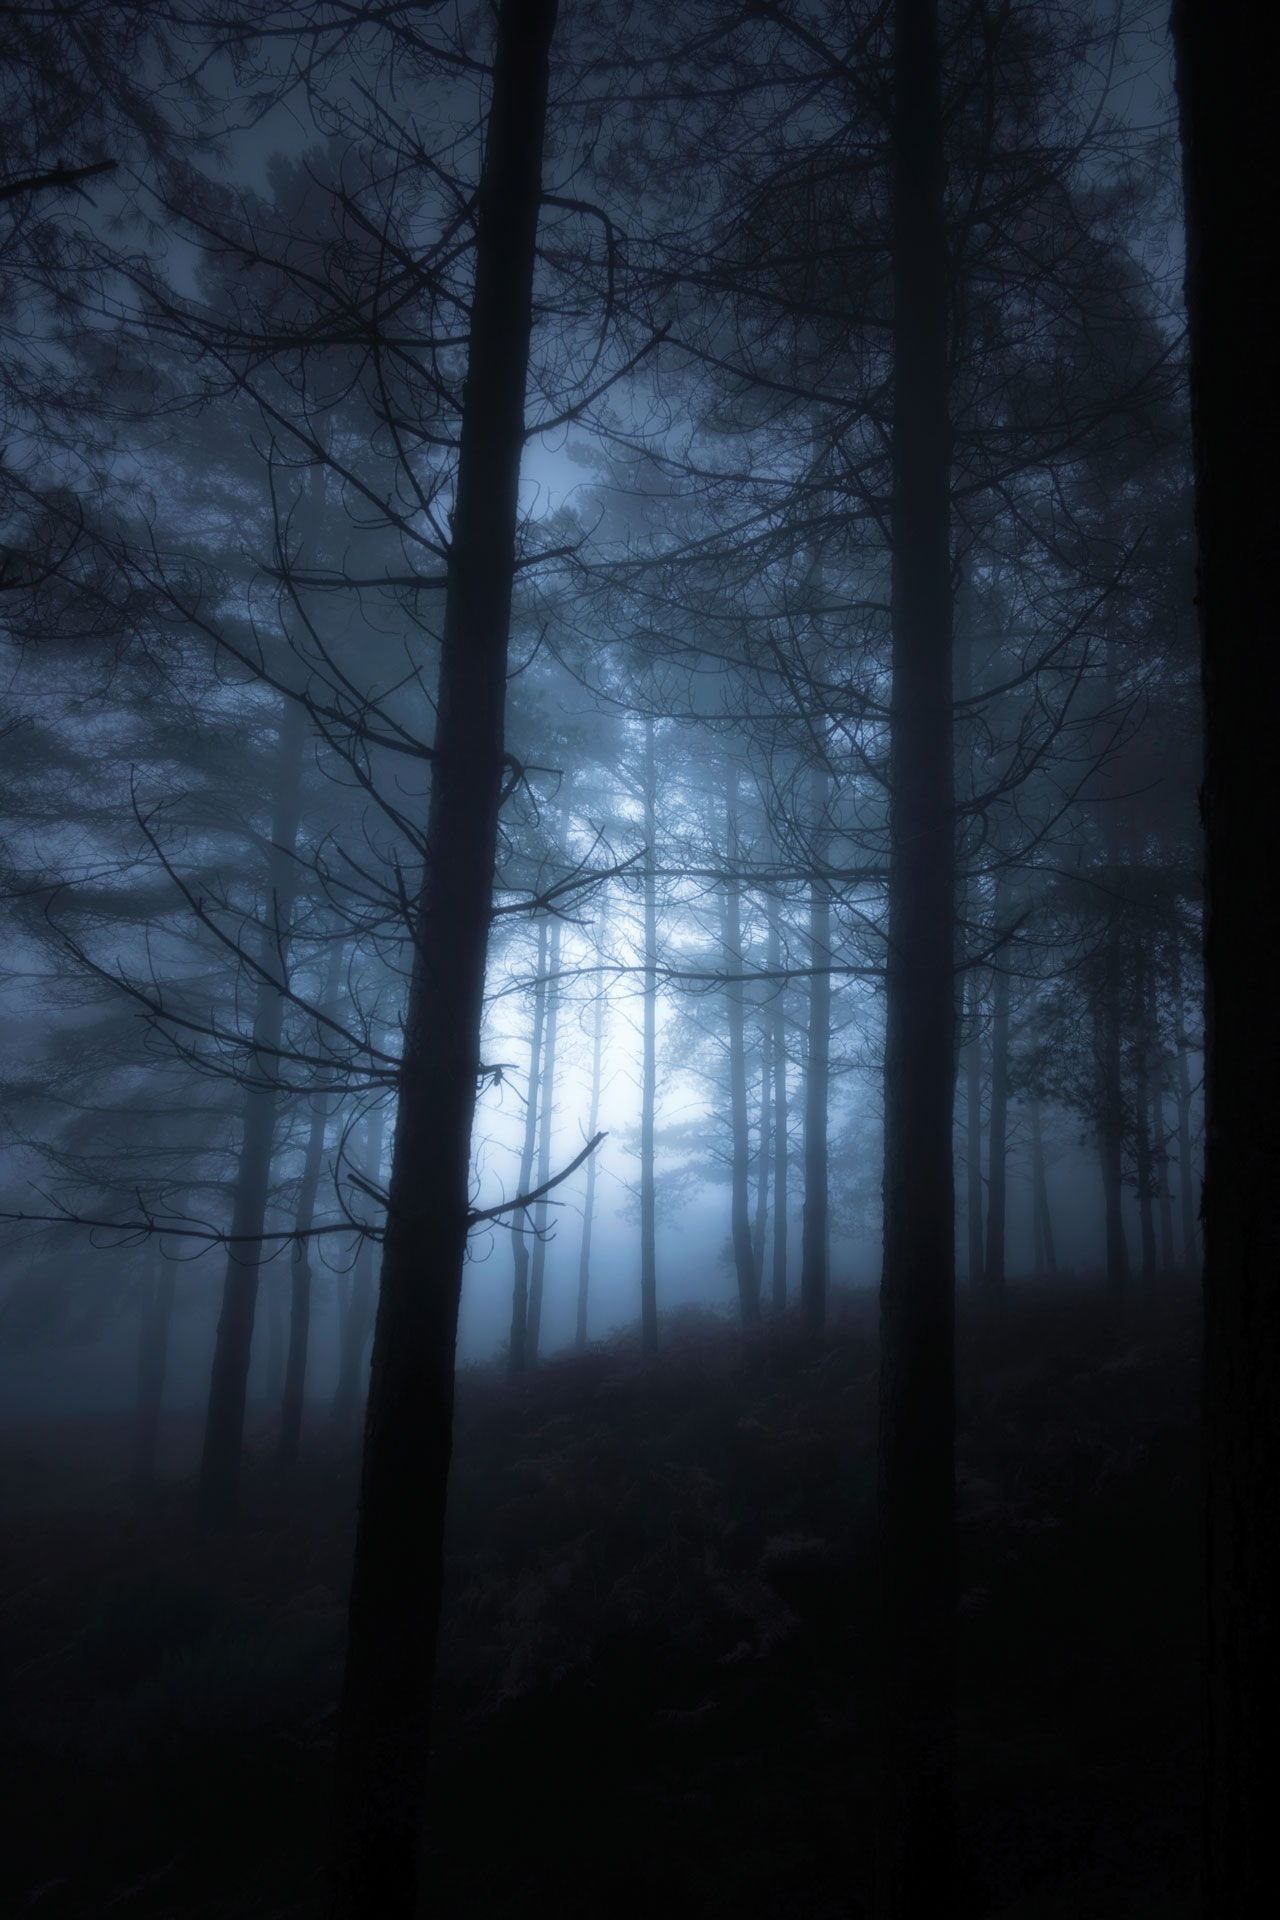 Moonlit forest looking up at trees bathed in blue light